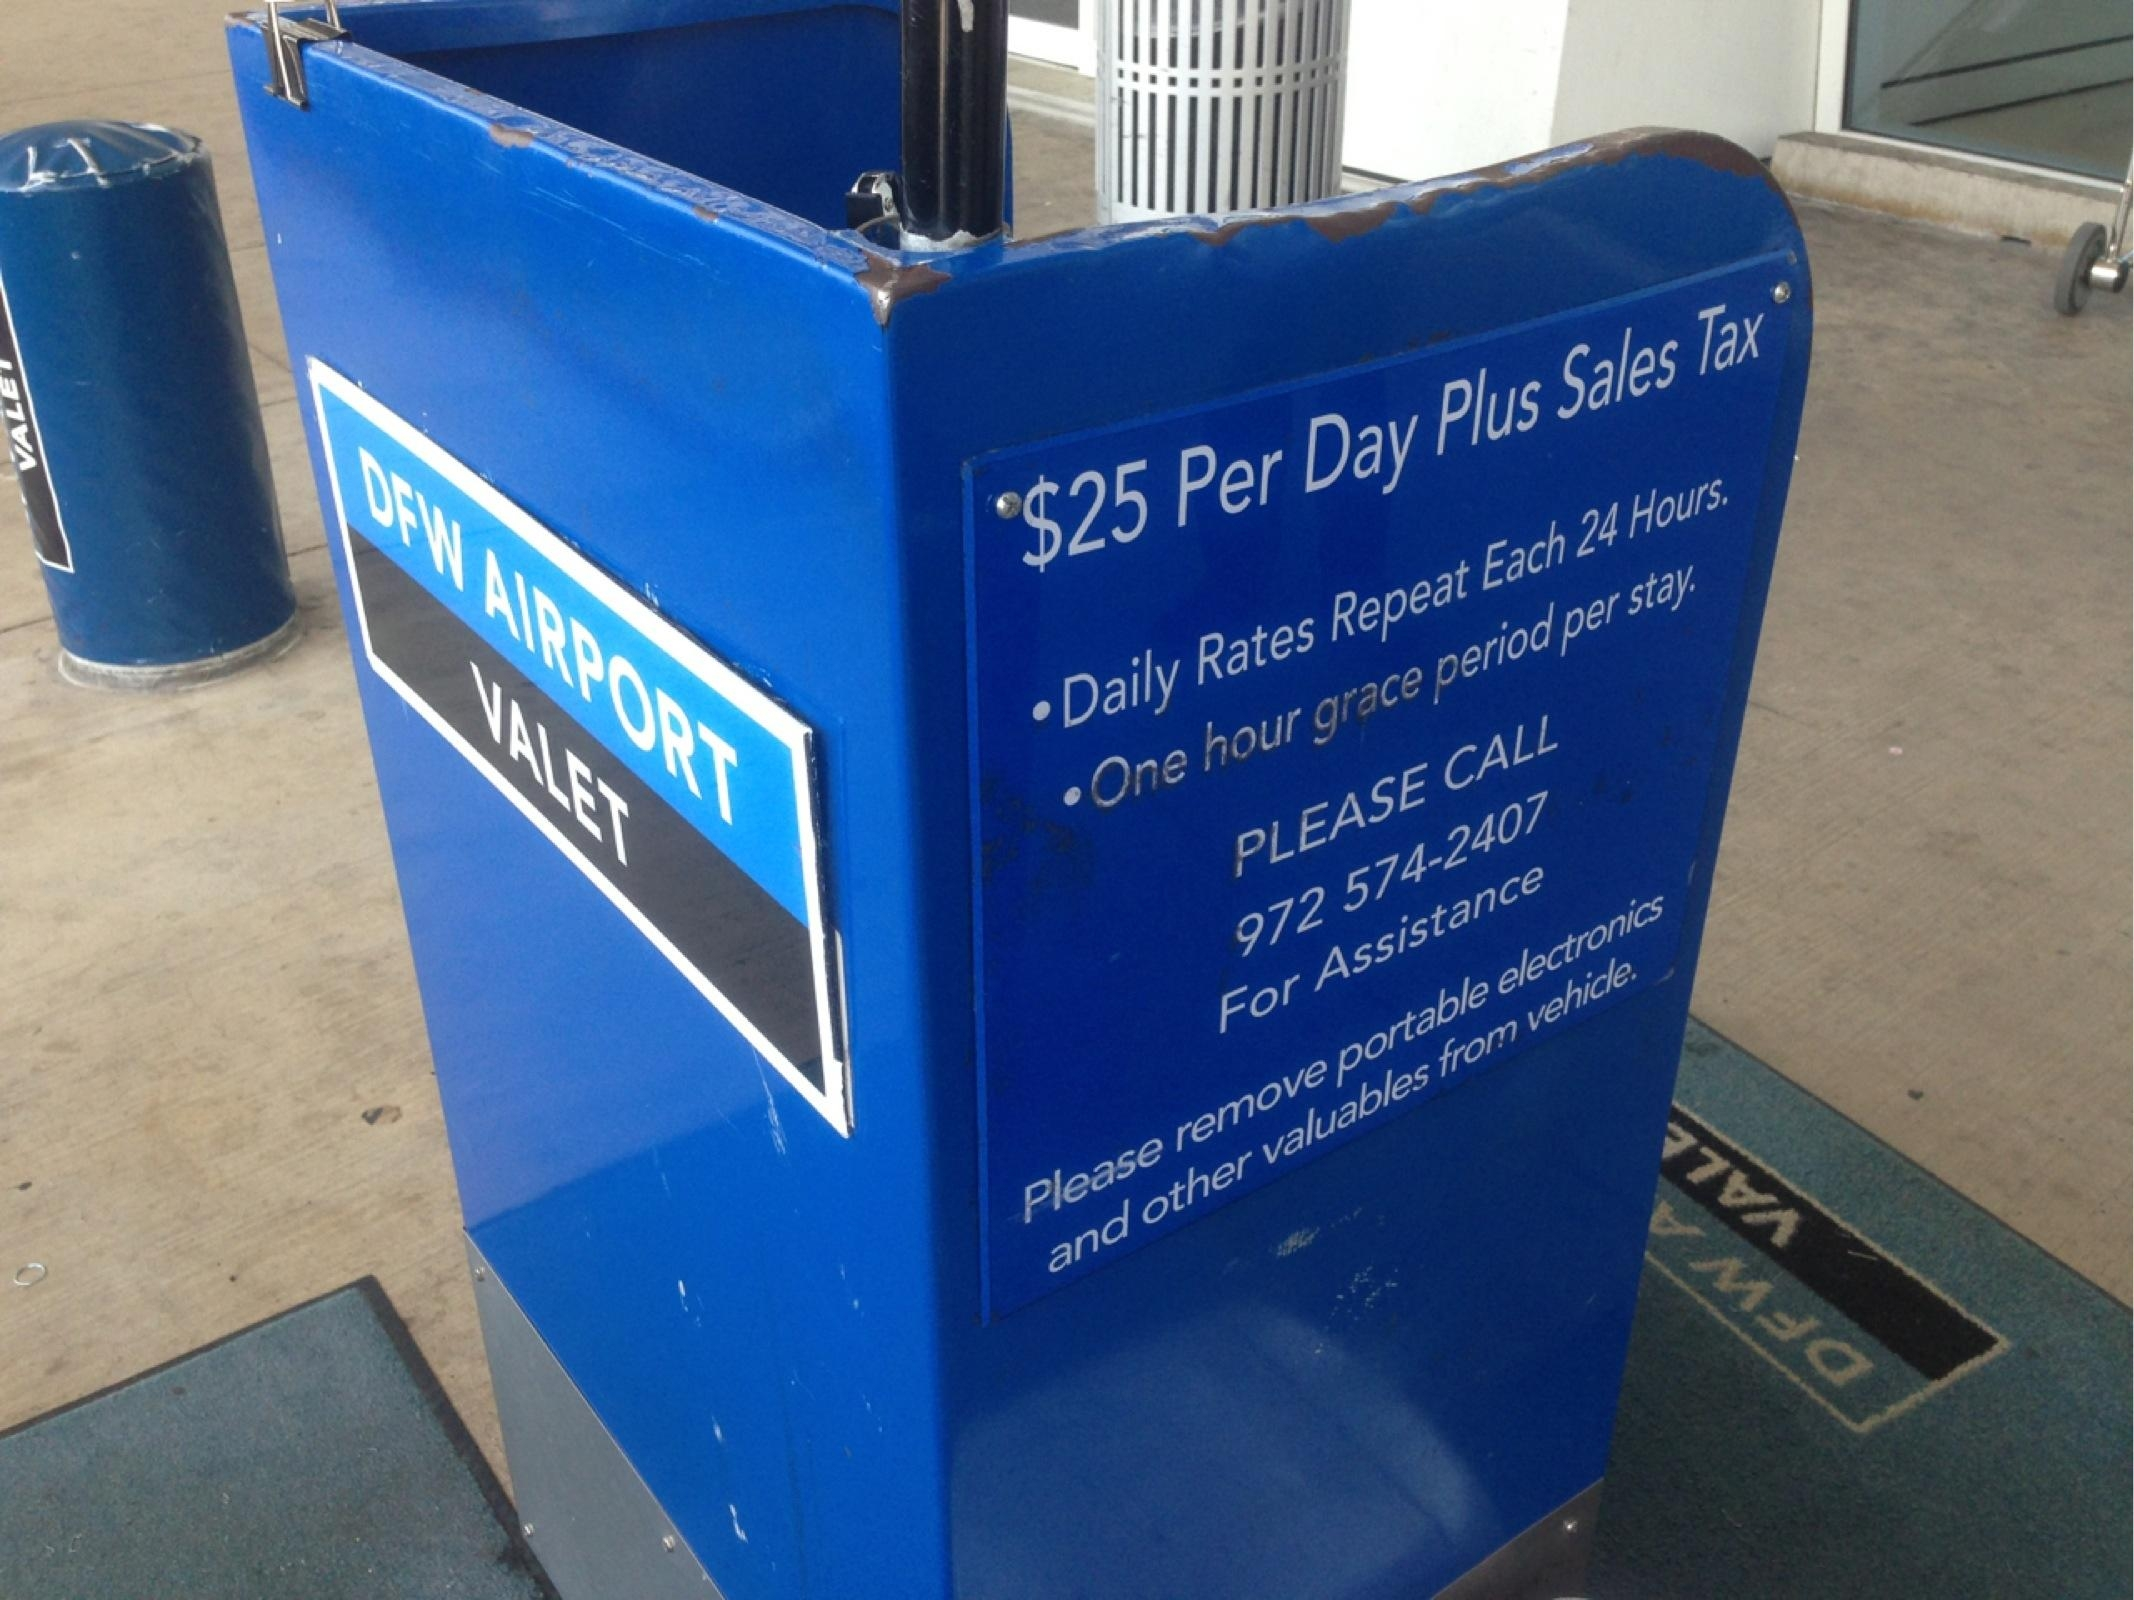 Dfw airport parking valet coupons